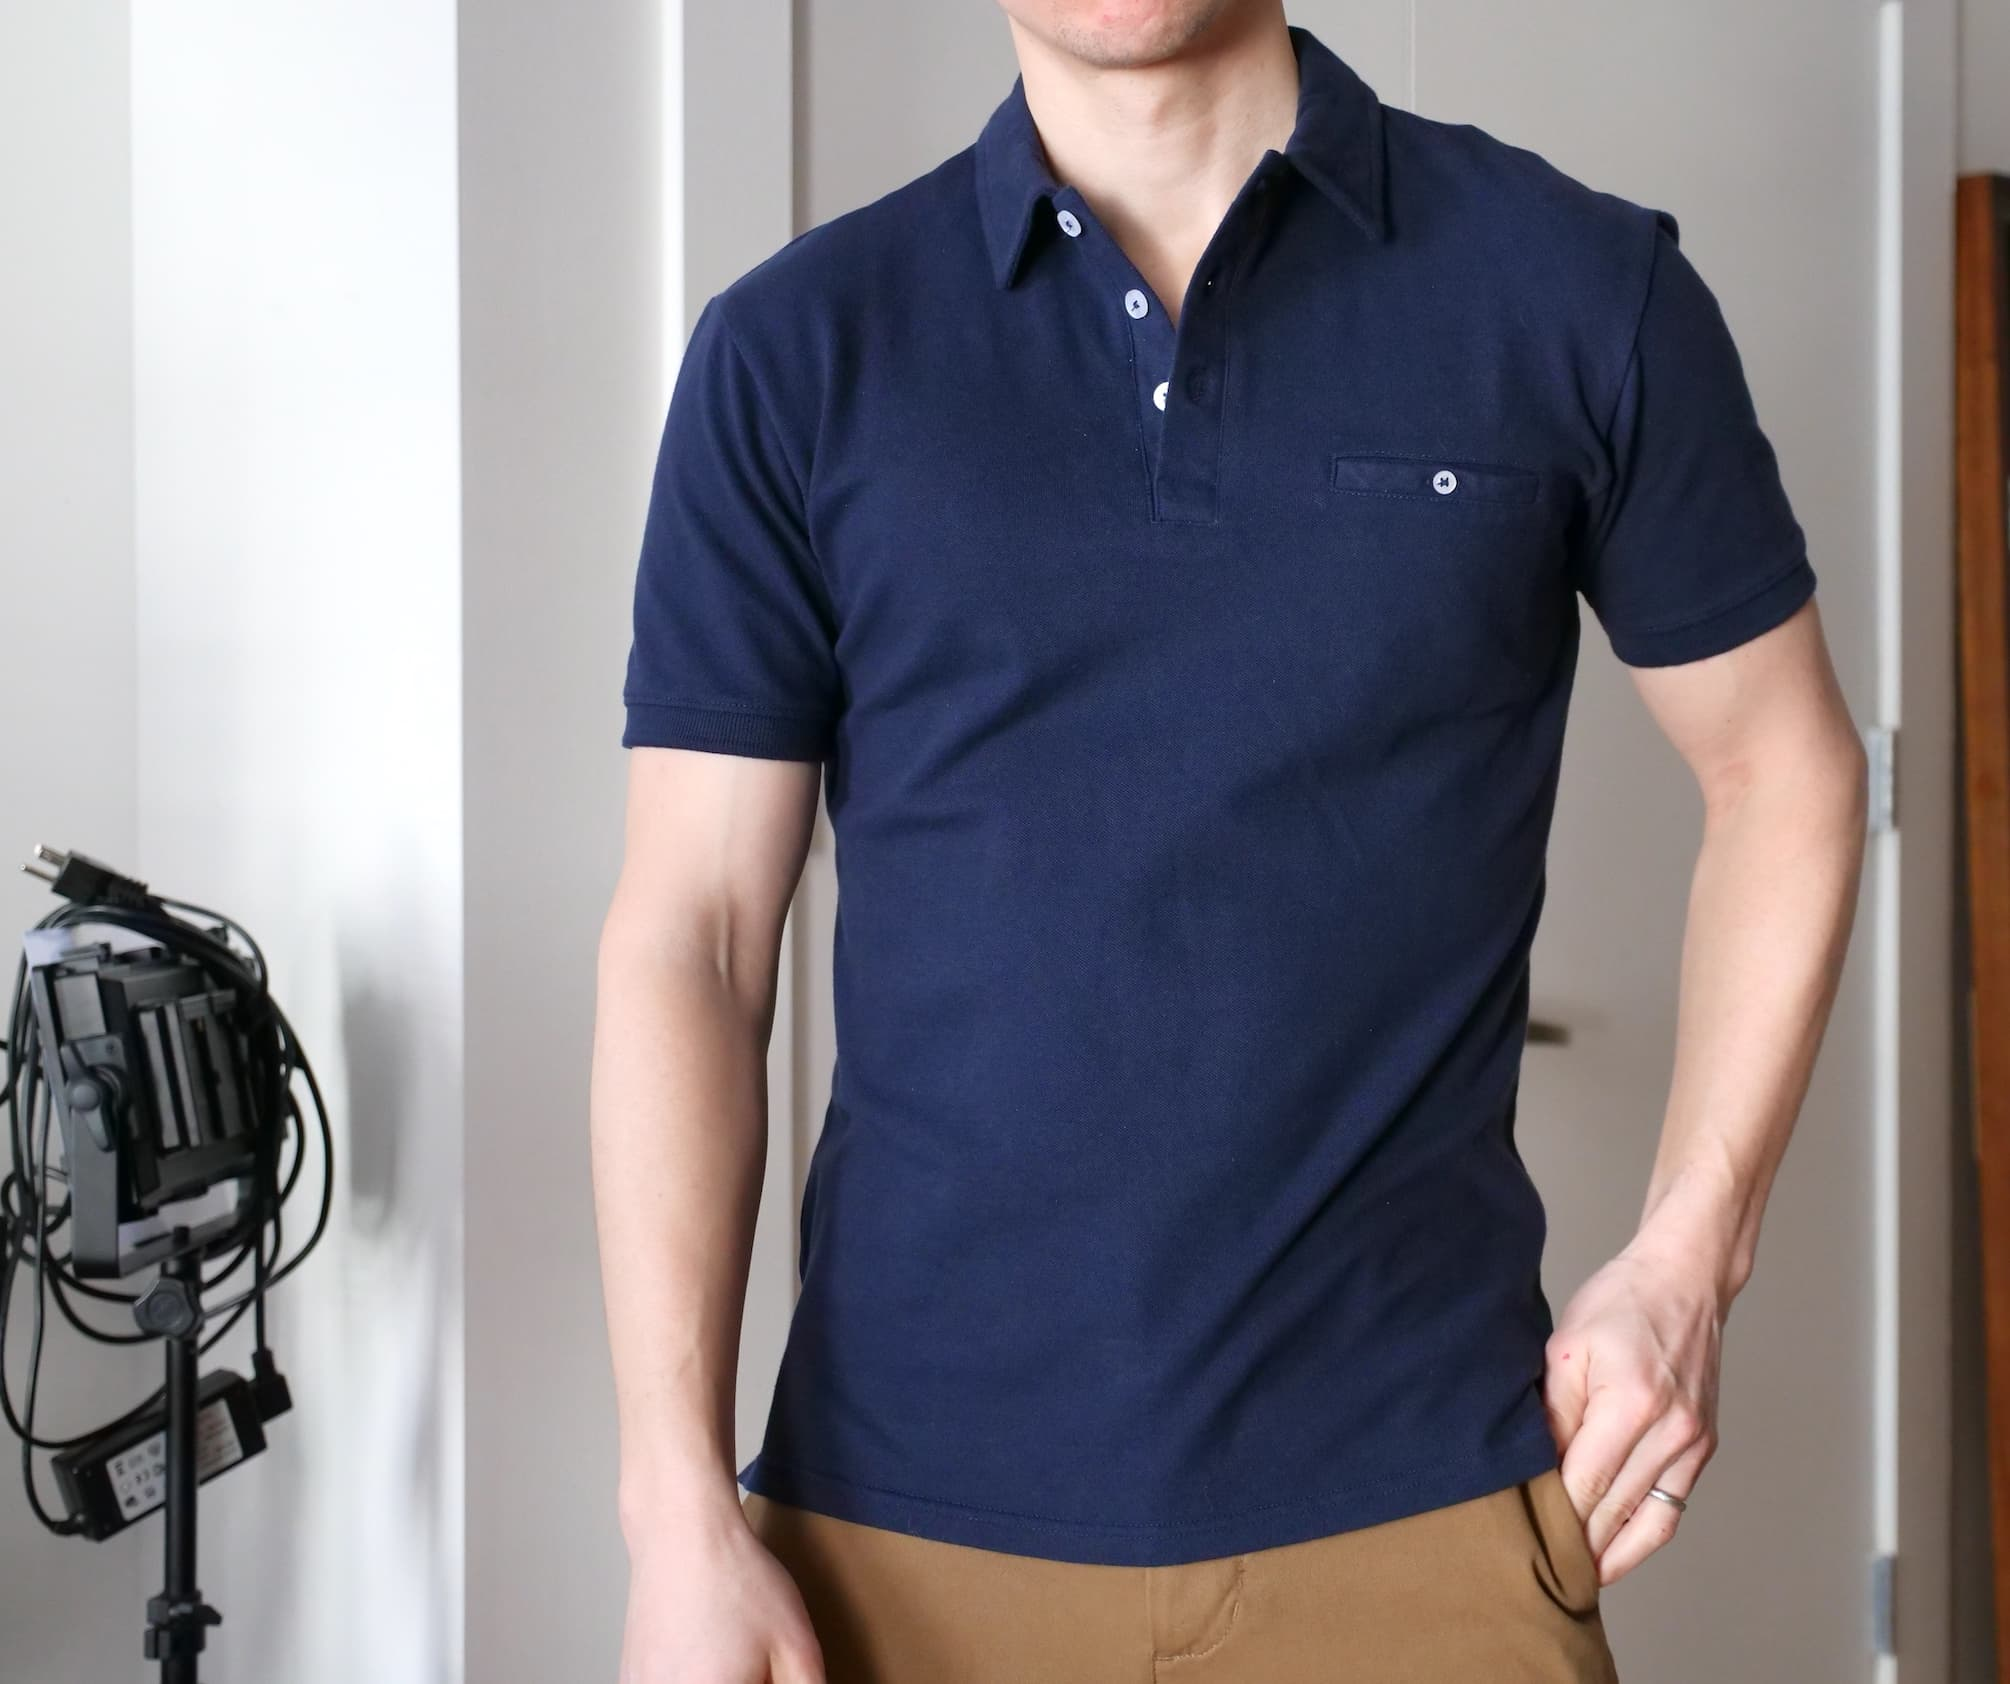 What To Wear On A First Date For Men The Modest Man